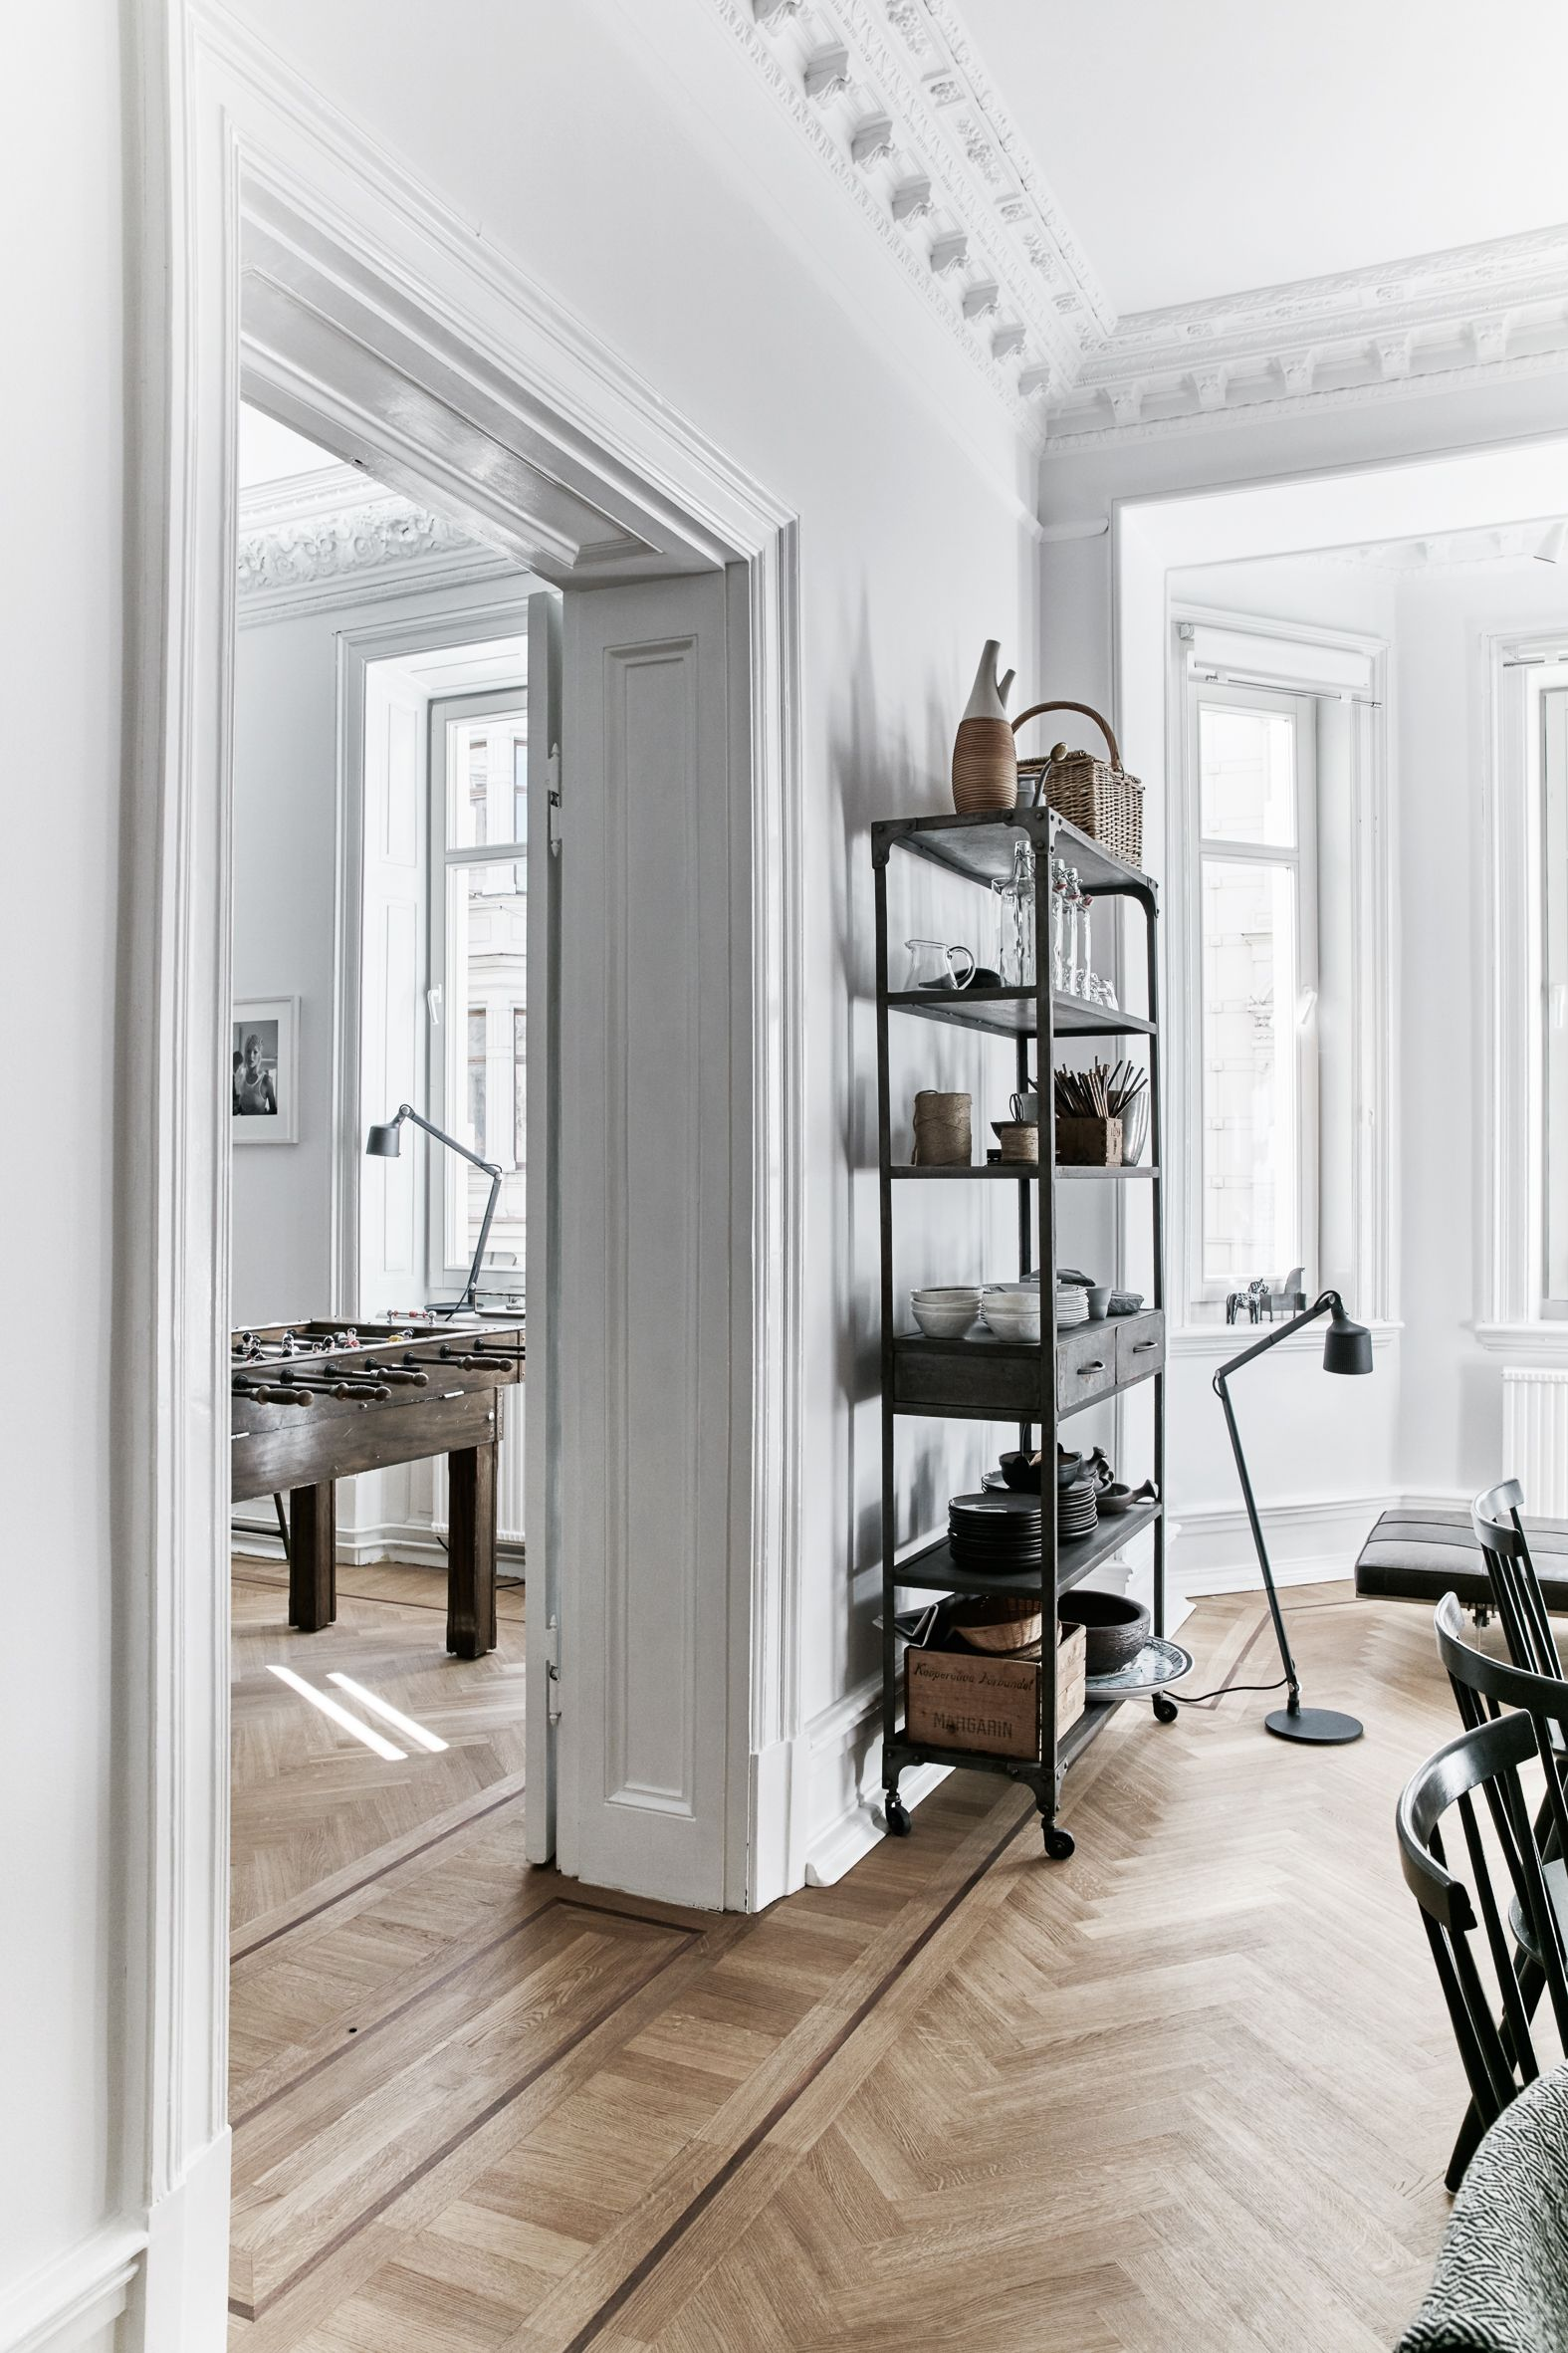 French Style Apartment Herringbone Floors Vipp Lamps And Natural Light In A Modern Home Of 4 Gothenburg Sweden